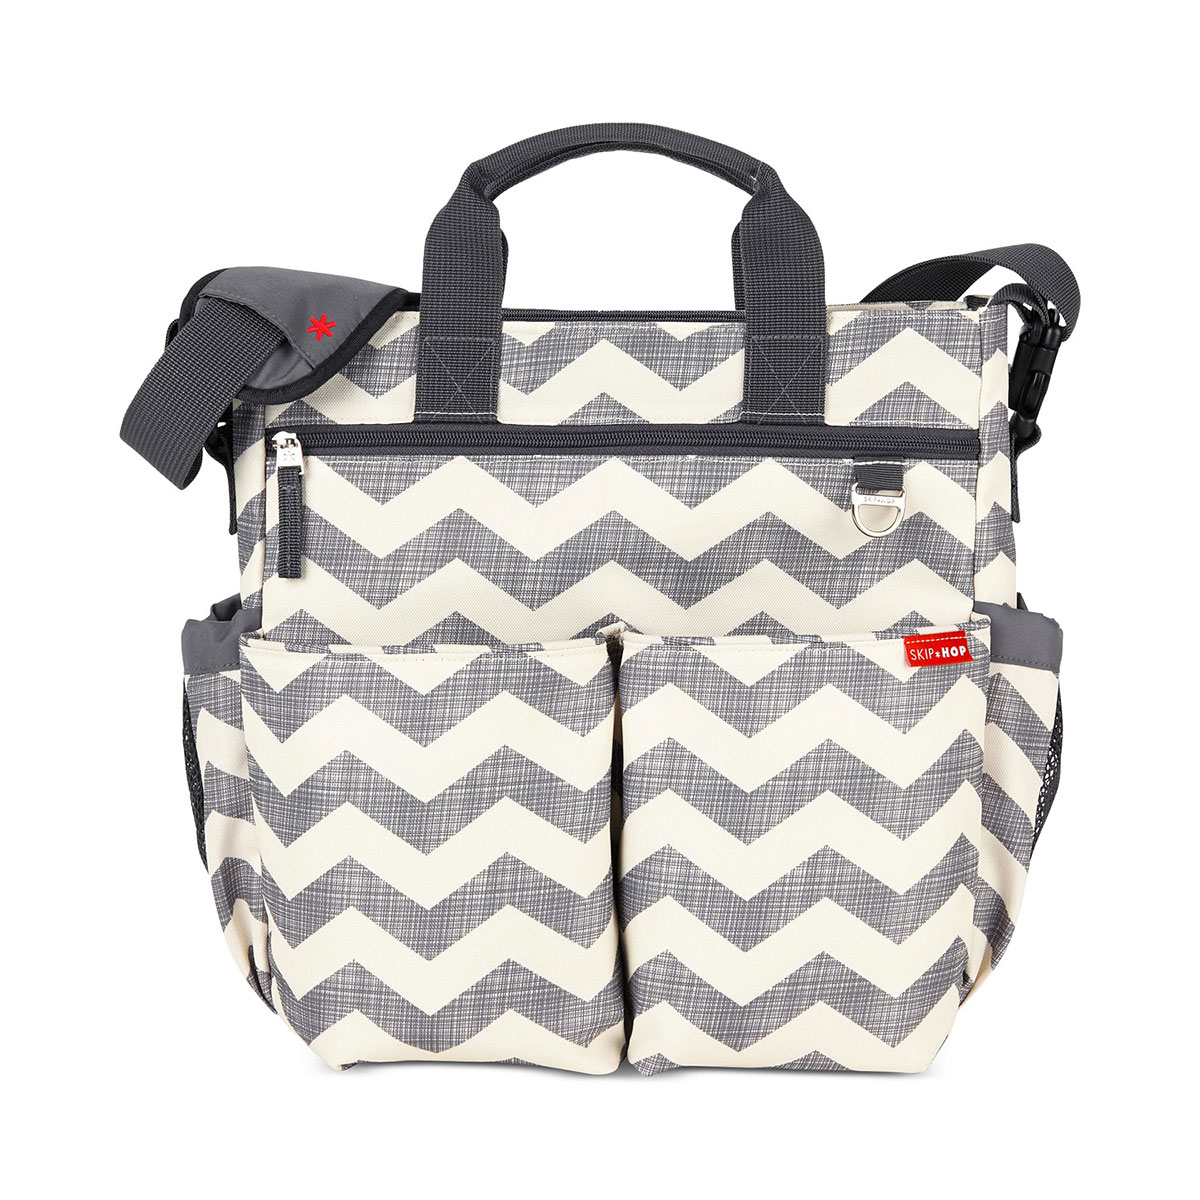 9cdf0081b4e The 15 Best Diaper Bags That Don't Actually Look Like Diaper Bags